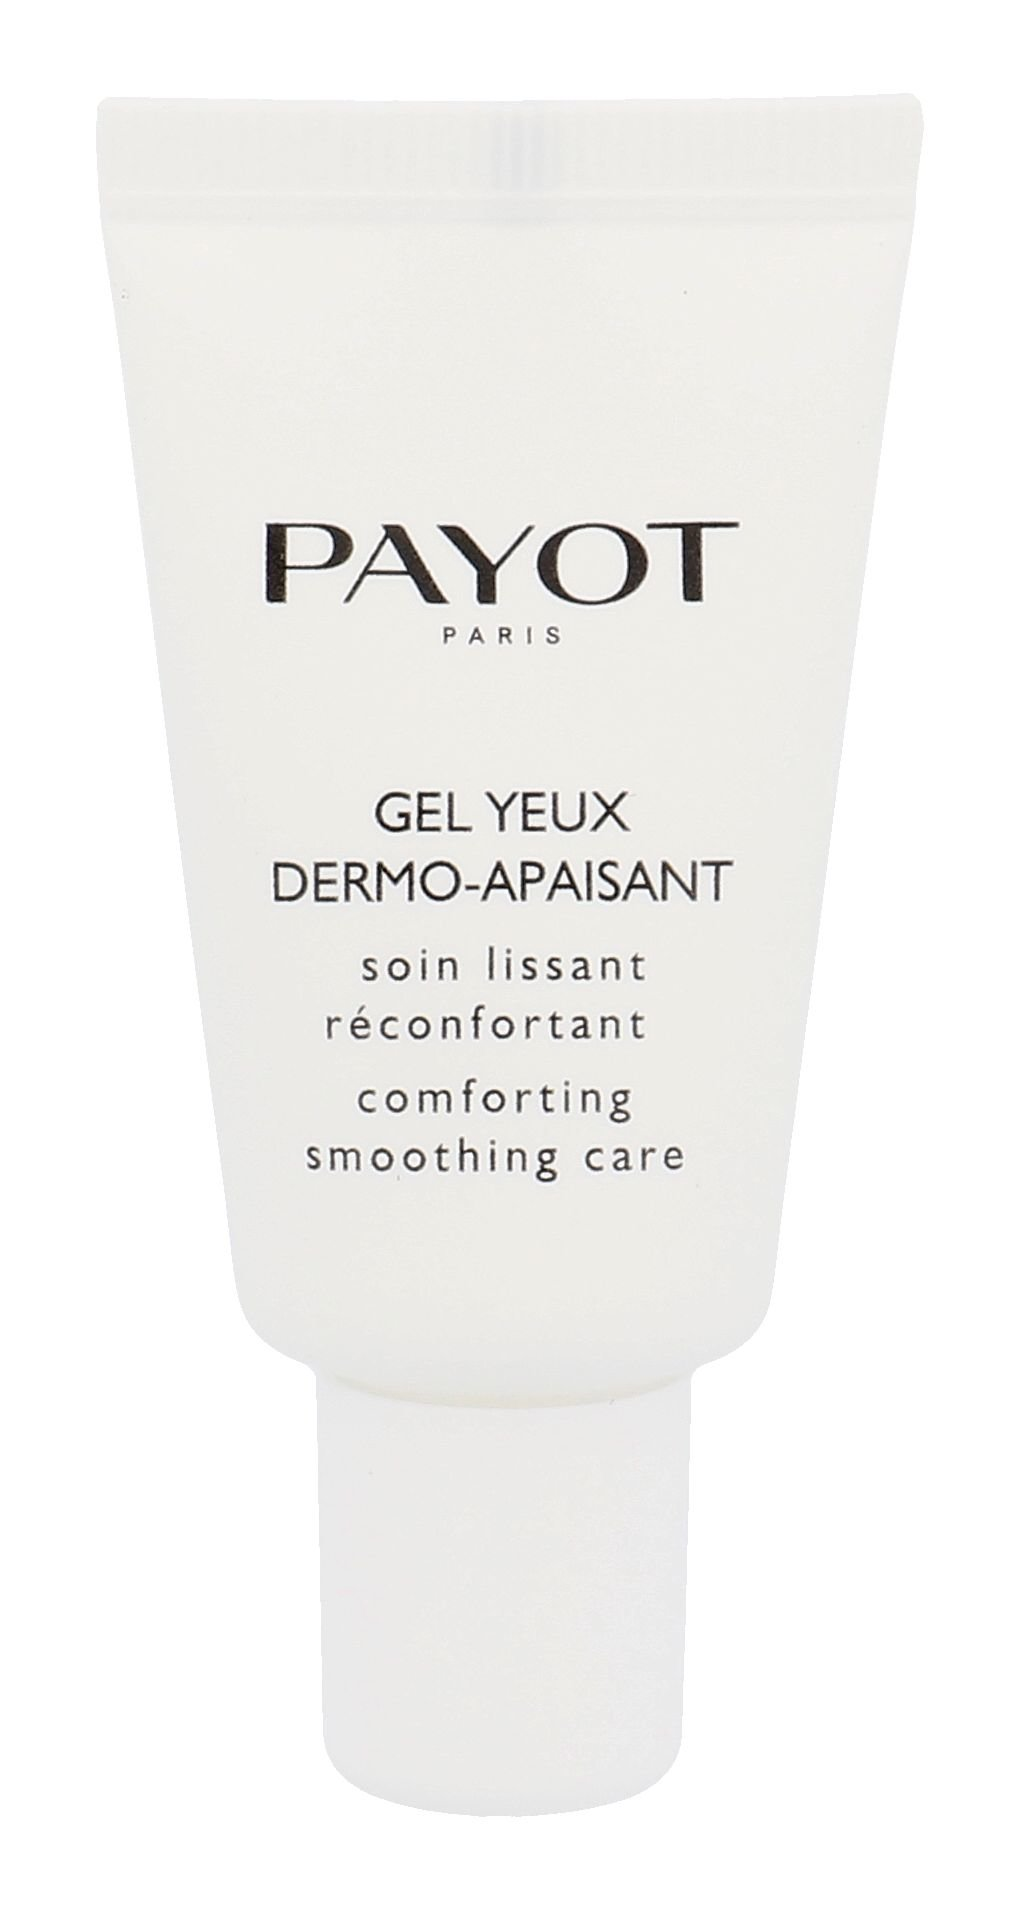 PAYOT Sensi Expert Cosmetic 15ml  Gel Yeux Apaisant Decongesting Eye Care